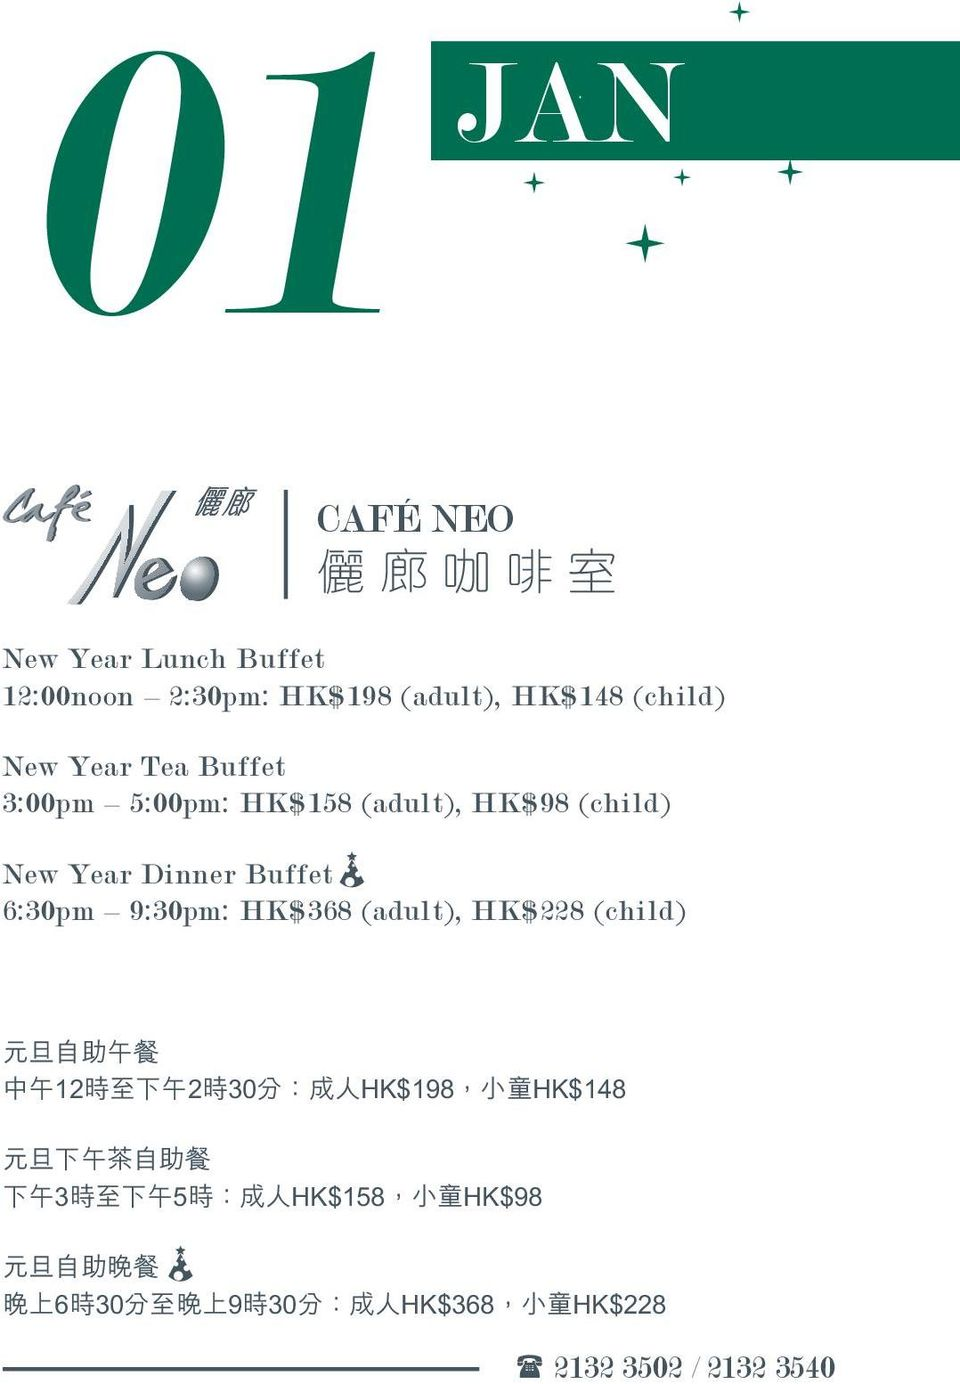 5:00pm: HK$158 (adult), HK$98 (child) New Year Dinner Buffet